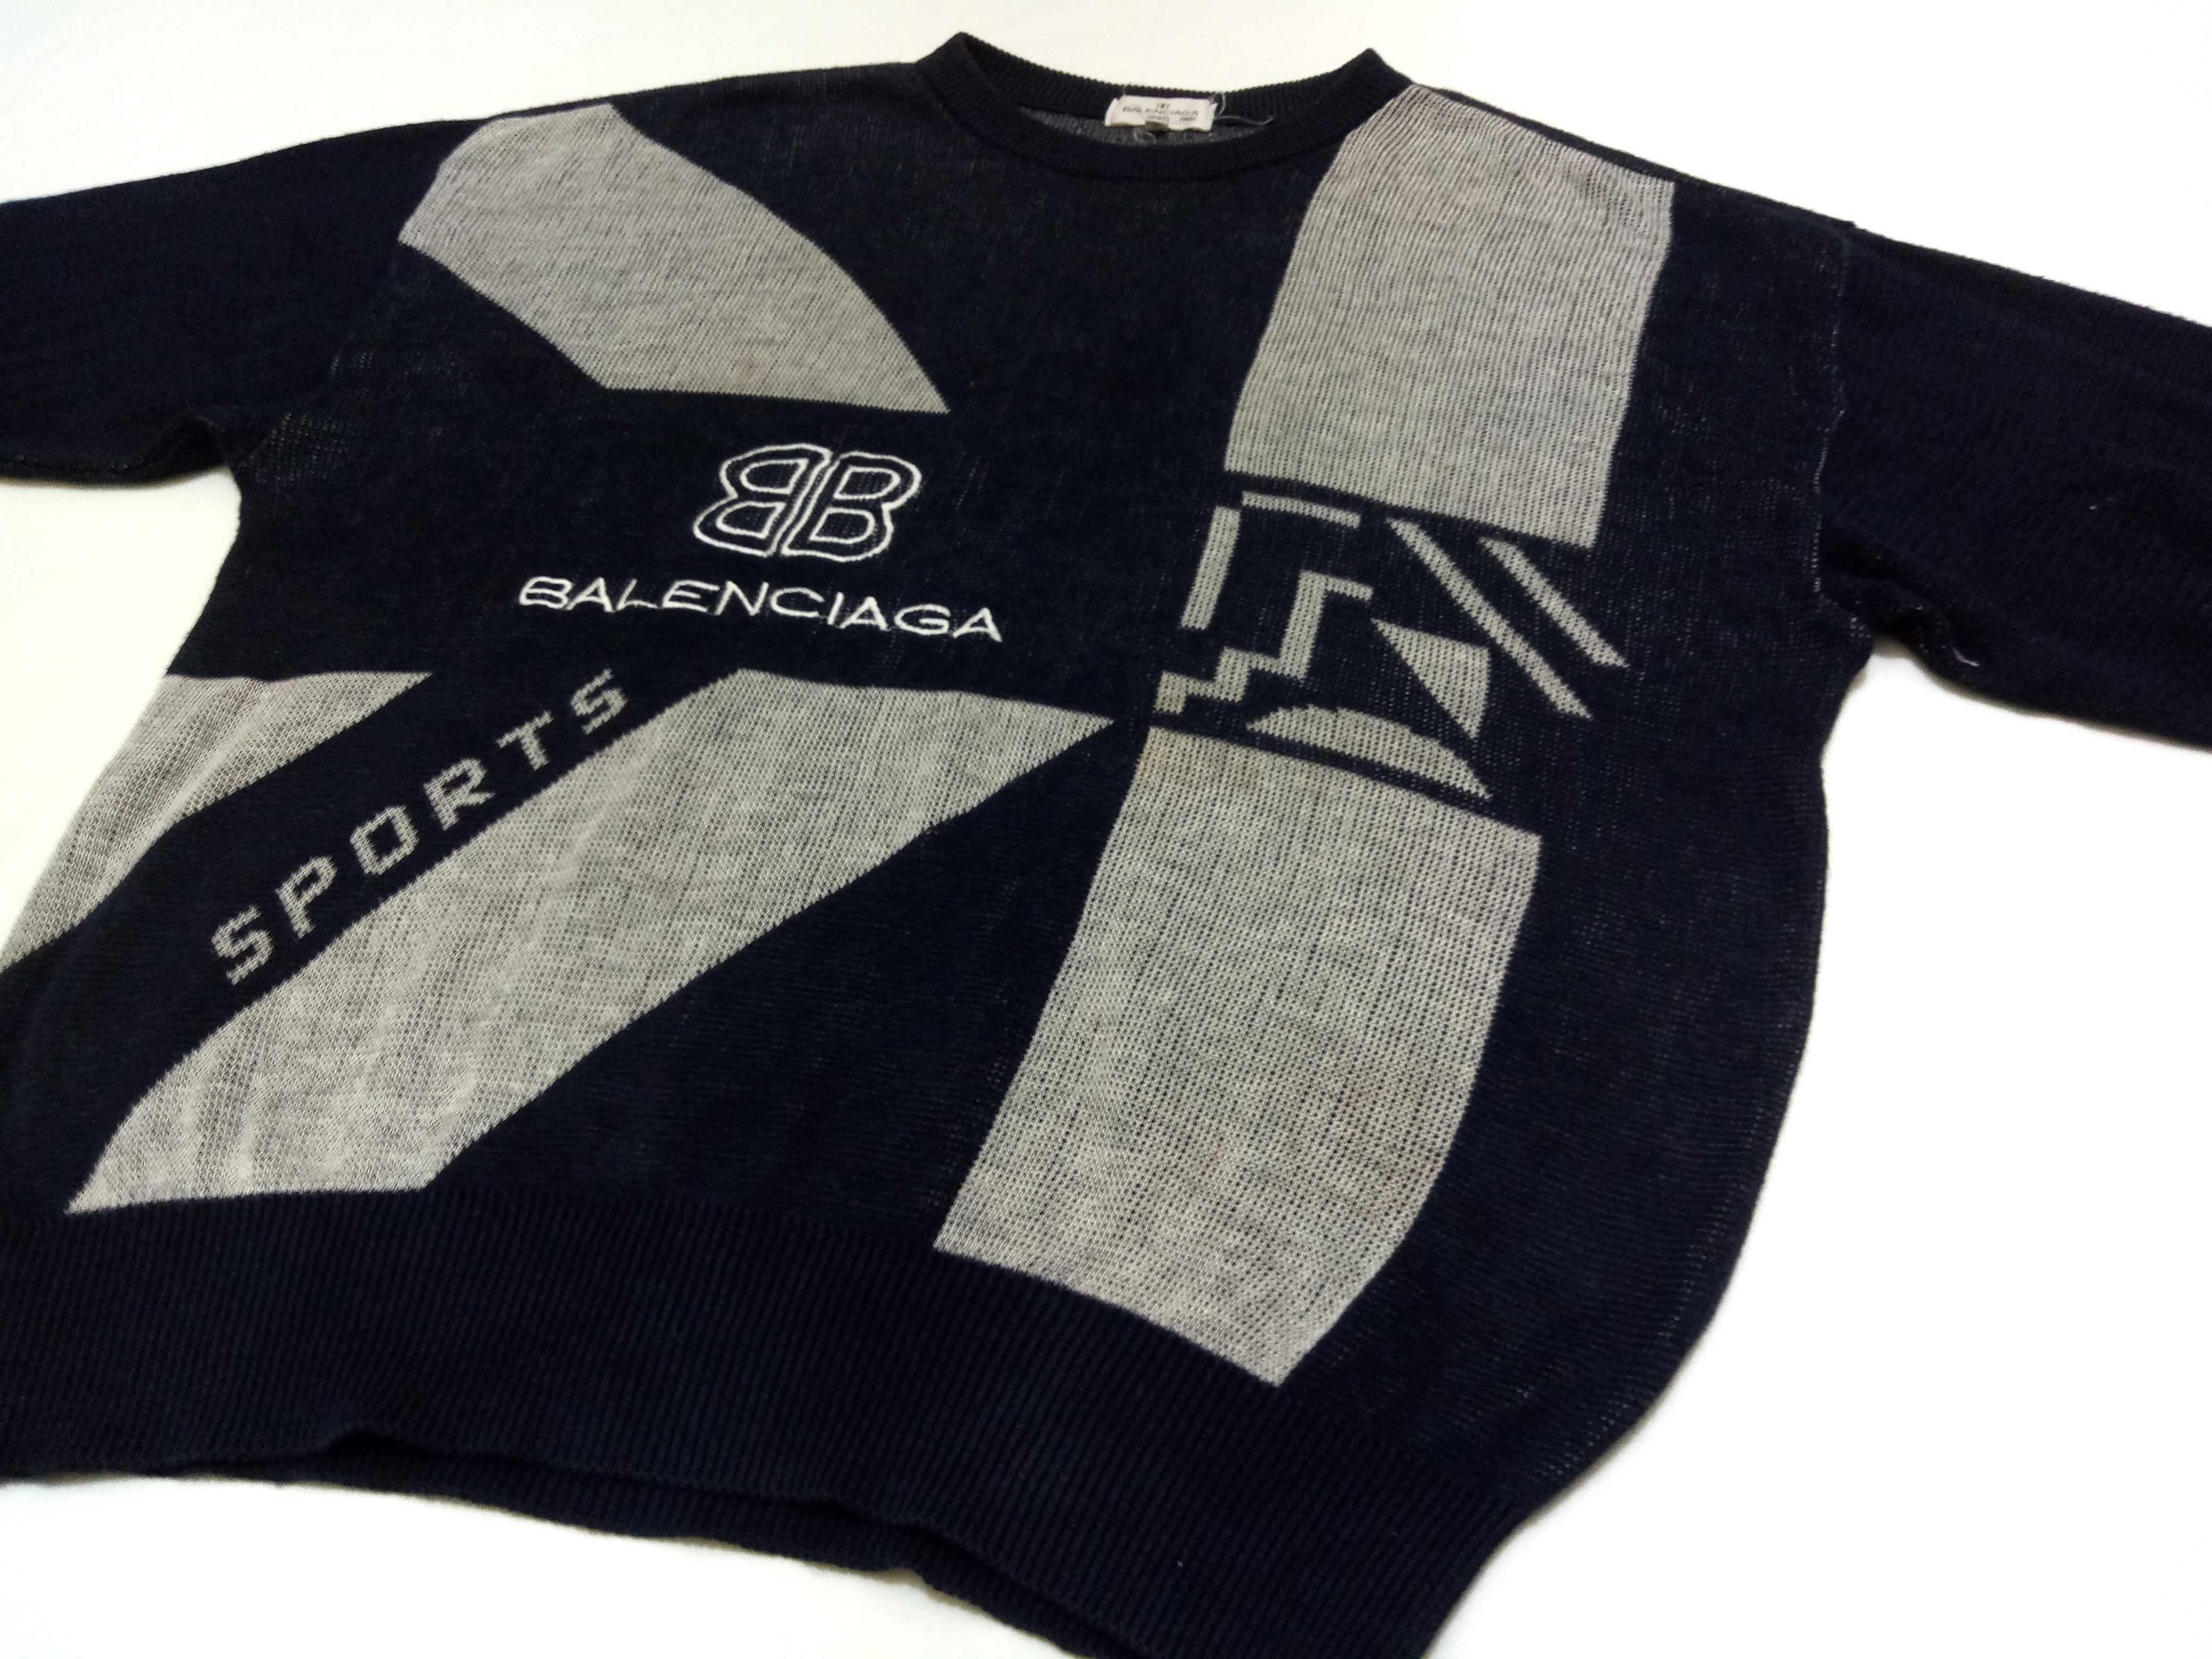 b9cf226d28f9d7 Balenciaga Vintage Balenciaga BB Sports Big Logo Spell Out Sweater Japanese  Licensed Size m - Sweaters   Knitwear for Sale - Grailed